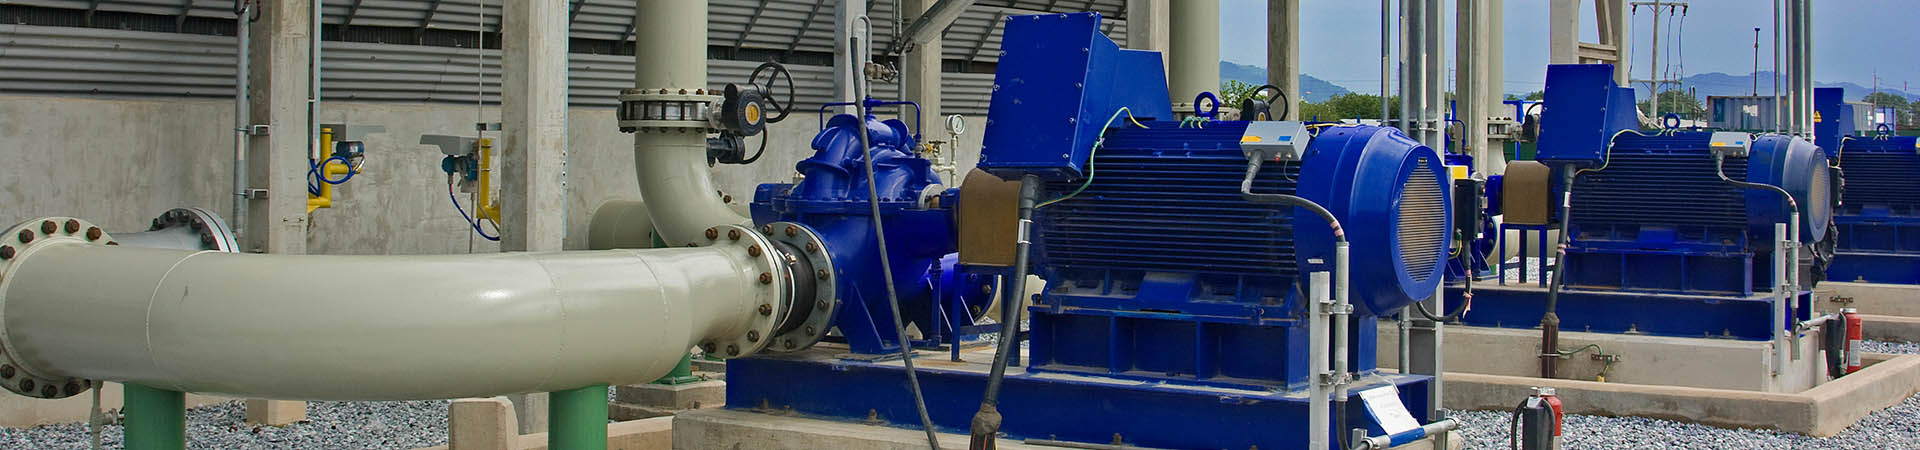 water Cooling Tower Pumps